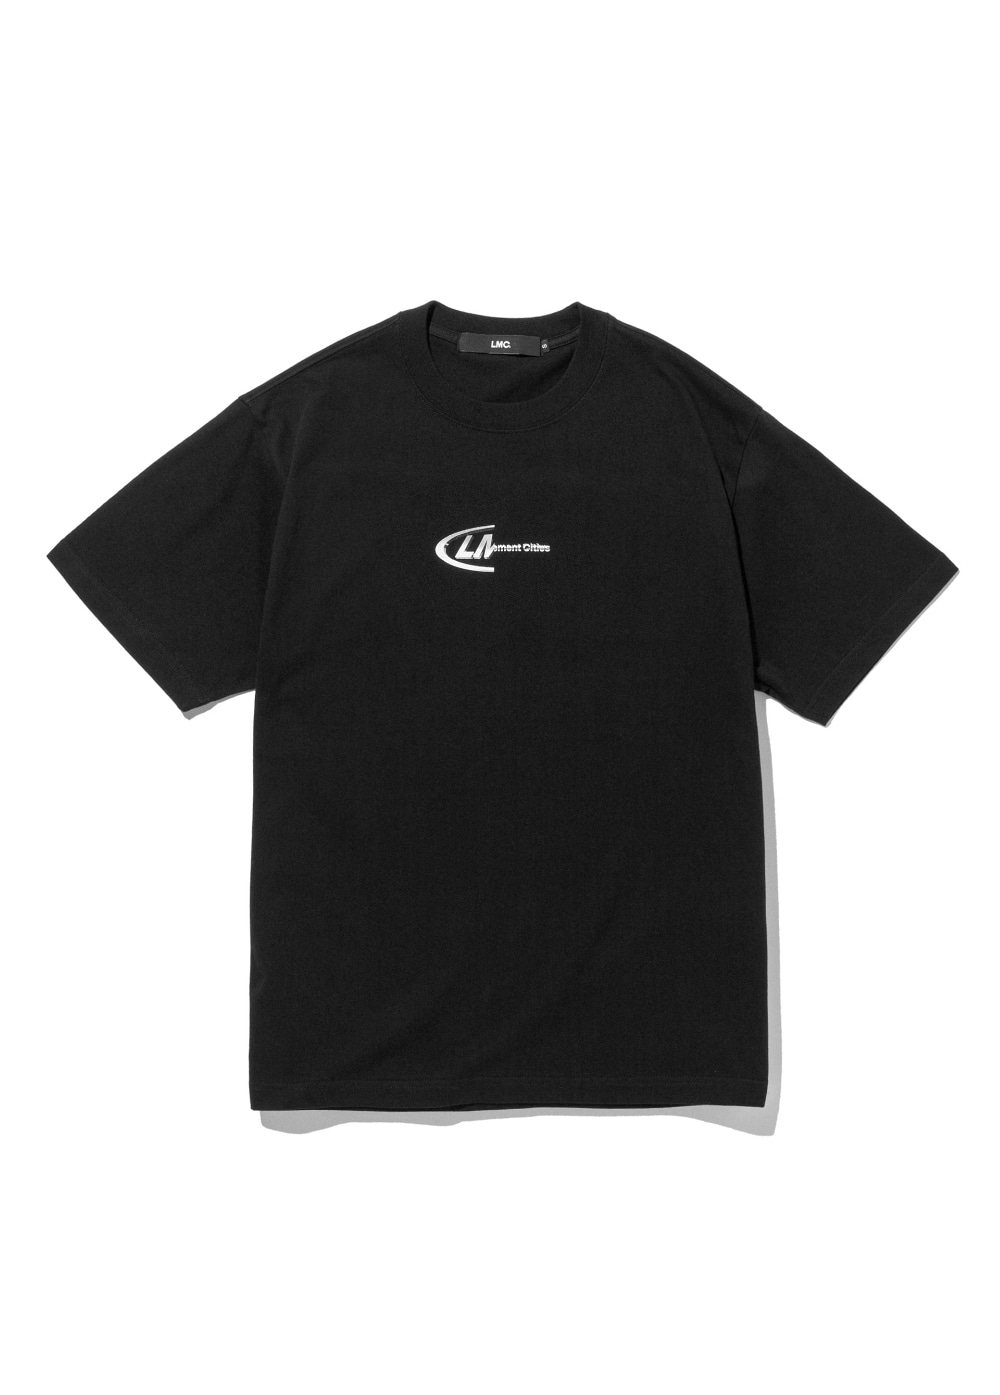 LMC CUT 3D LOGO TEE black